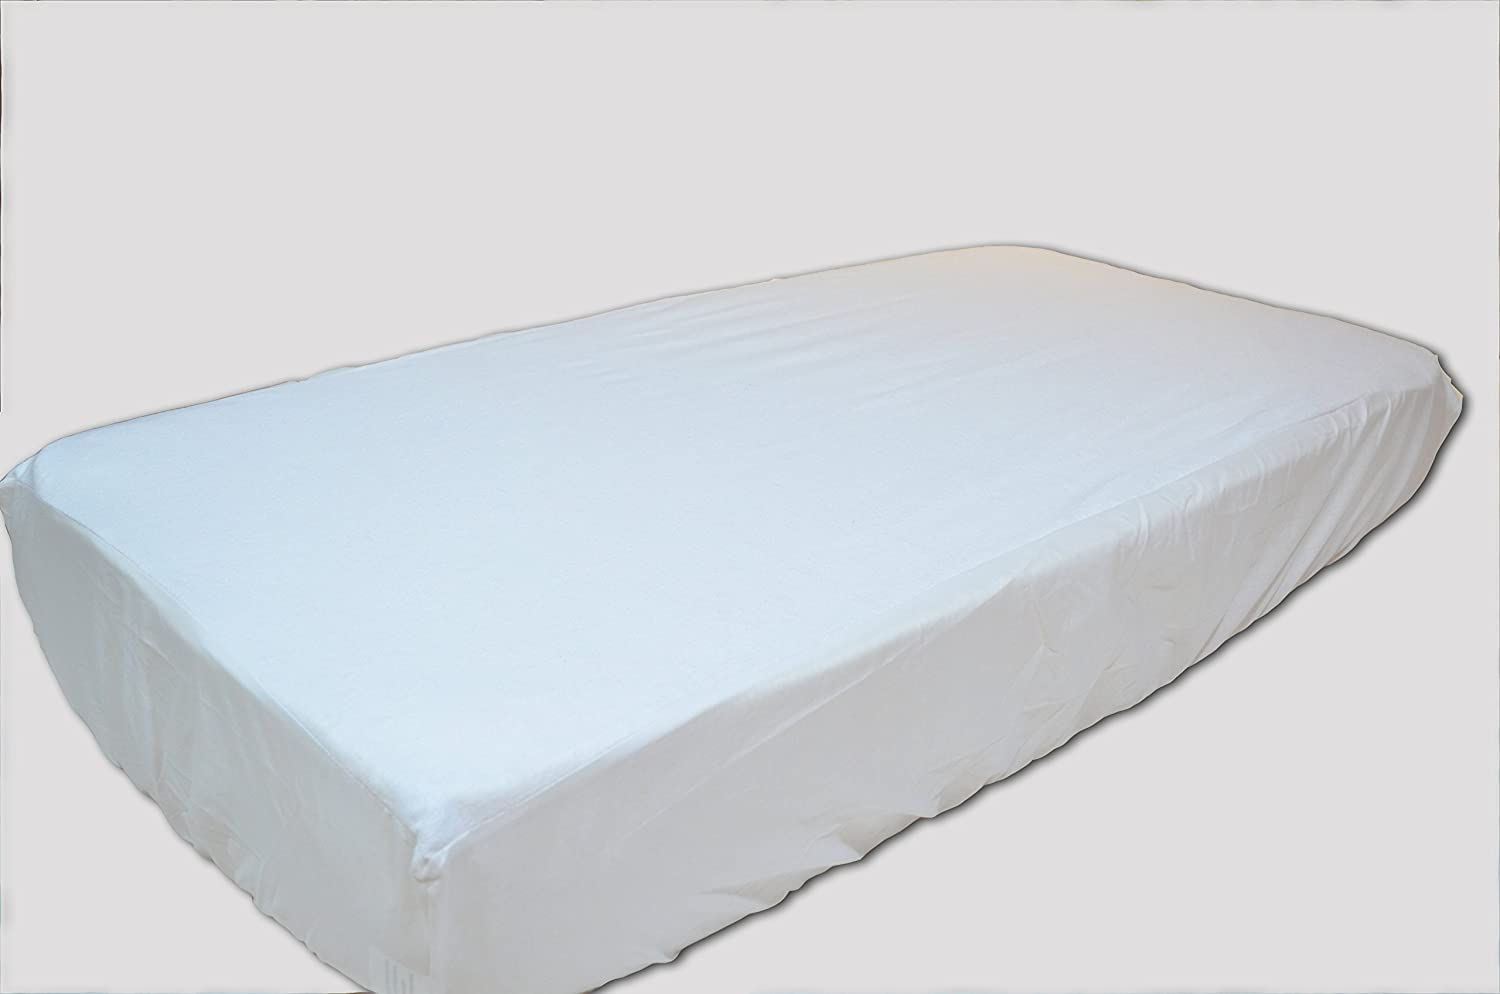 Trance Home Linen Cotton Terry Waterproof Crib Mattress Protector - (Pack of 2)-WHITE